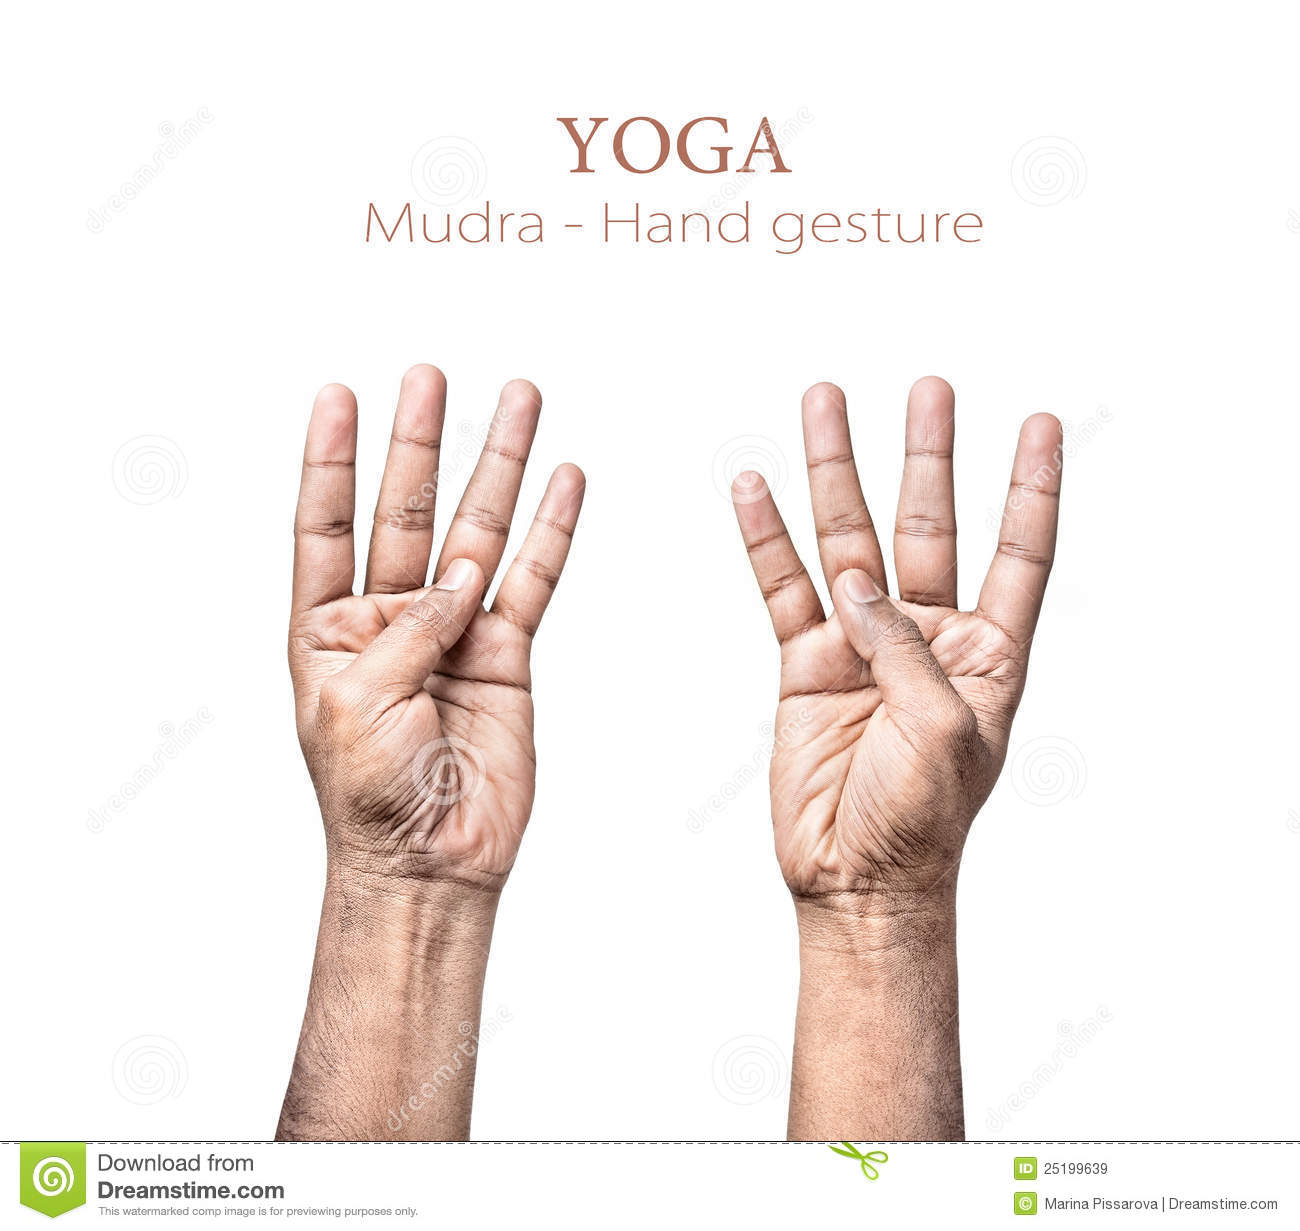 Discussion on this topic: Mudra Hand Gestures in Yoga, mudra-hand-gestures-in-yoga/